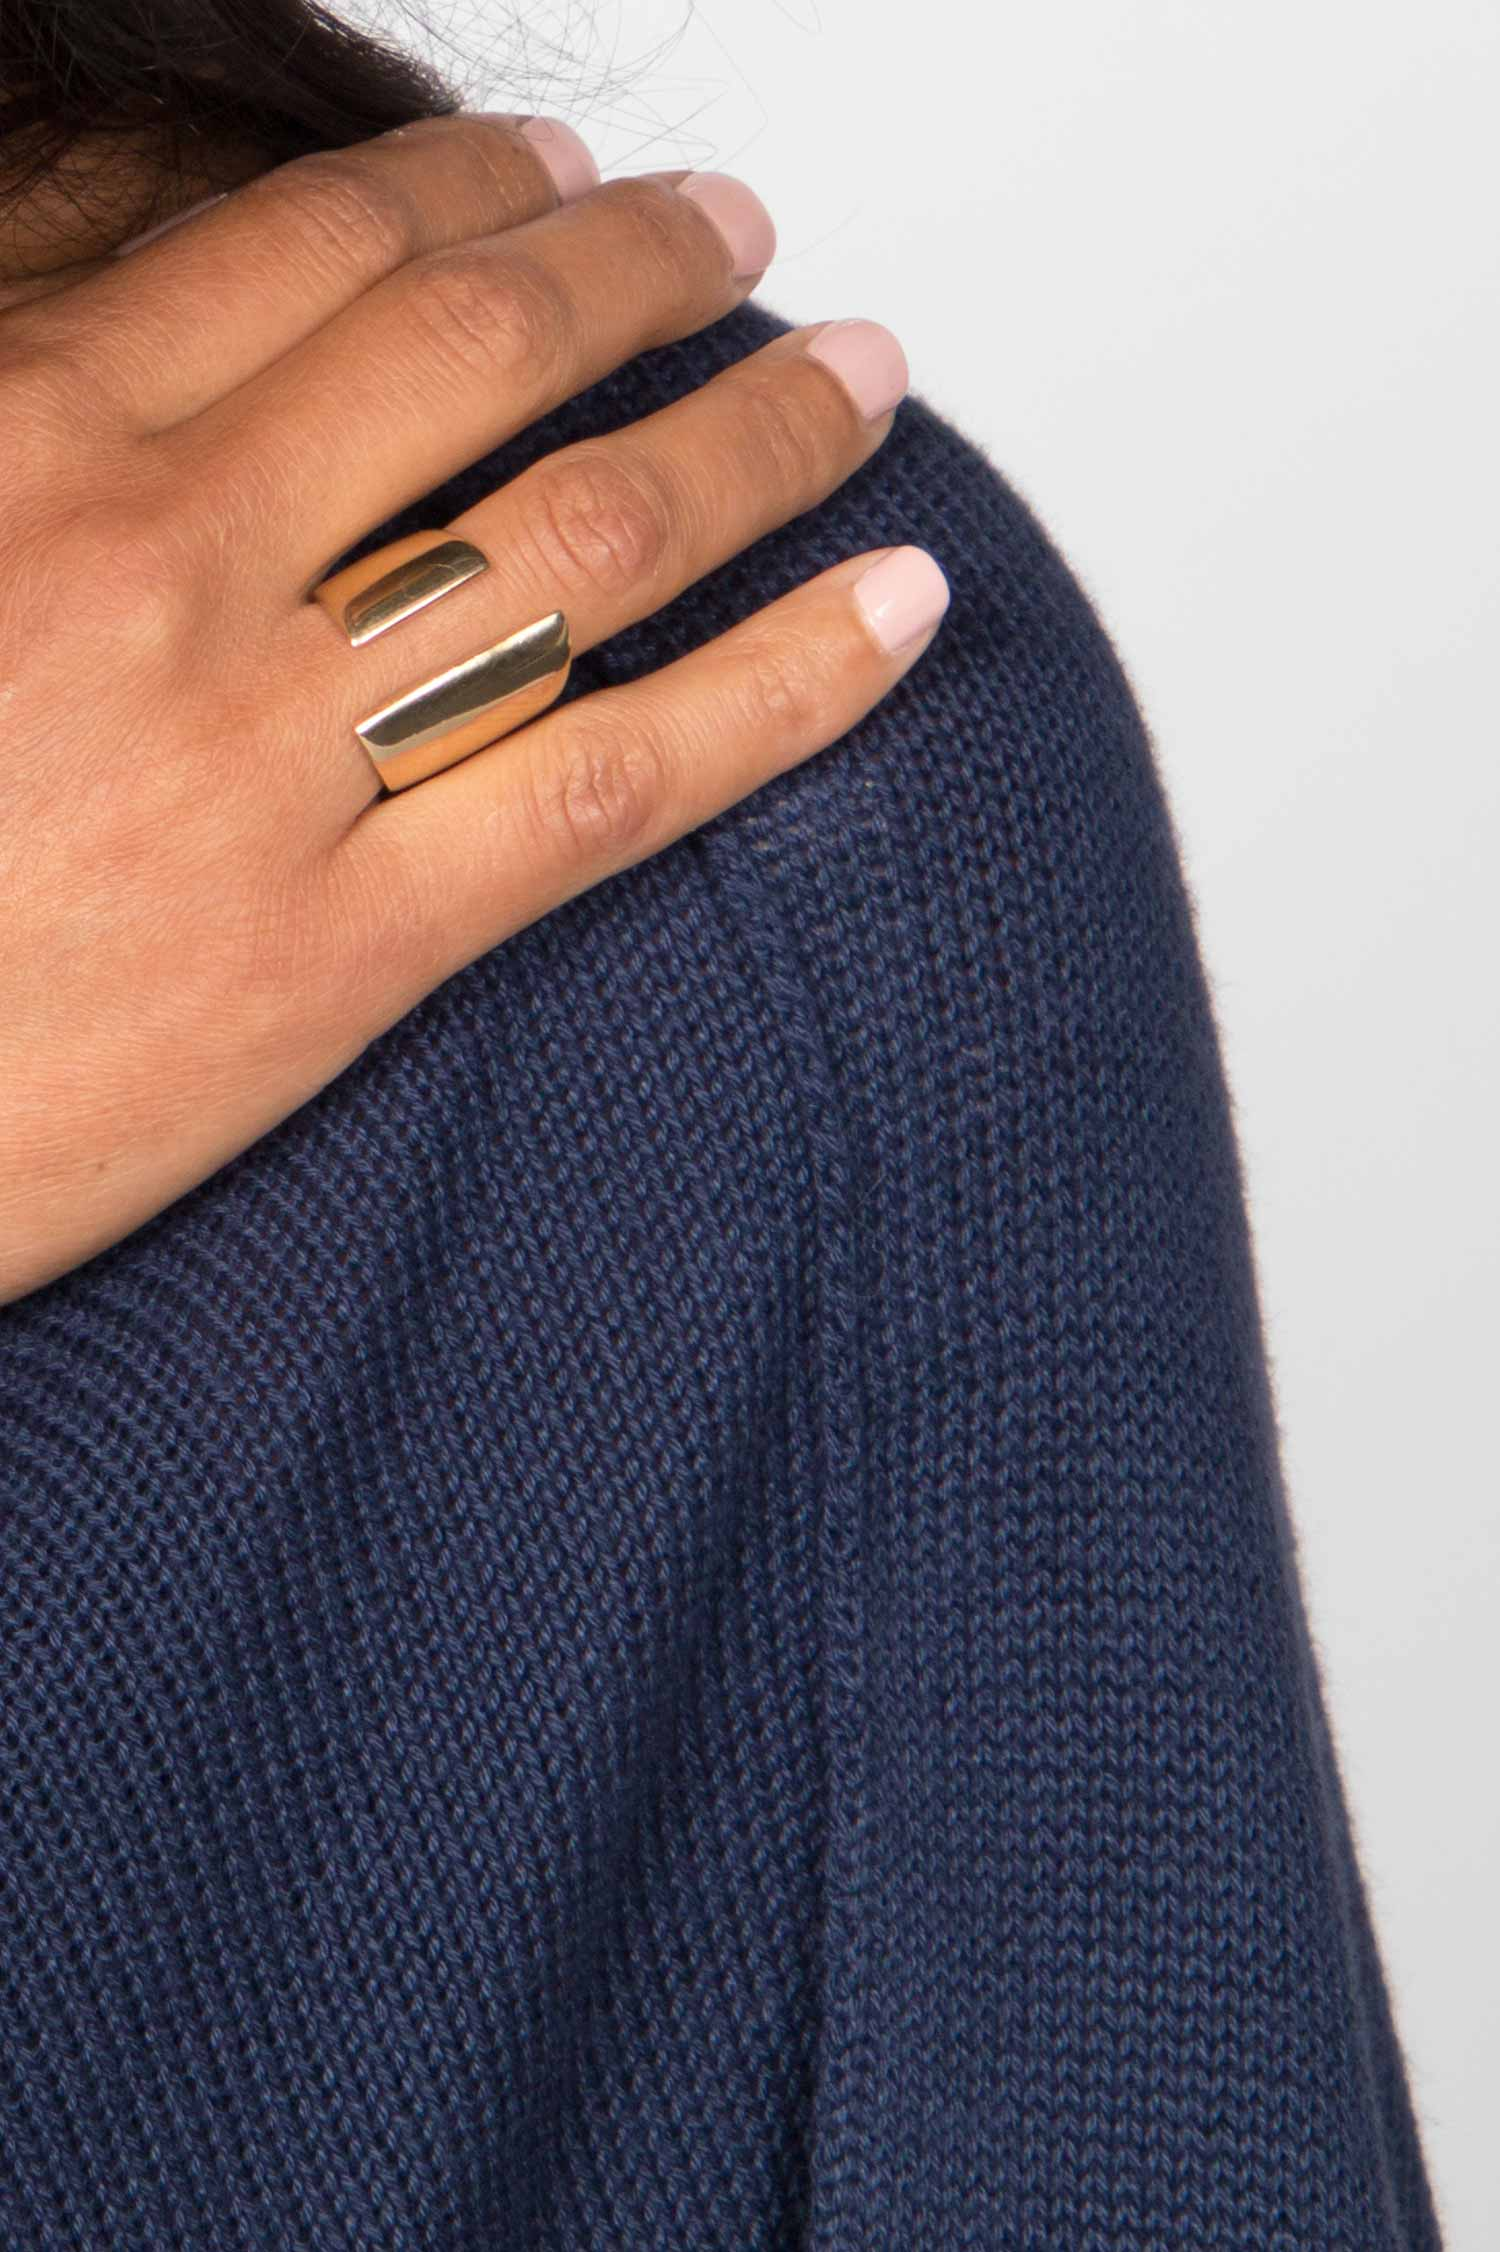 Womens Brass Channel Ring | Ethical Jewelry by SOKO